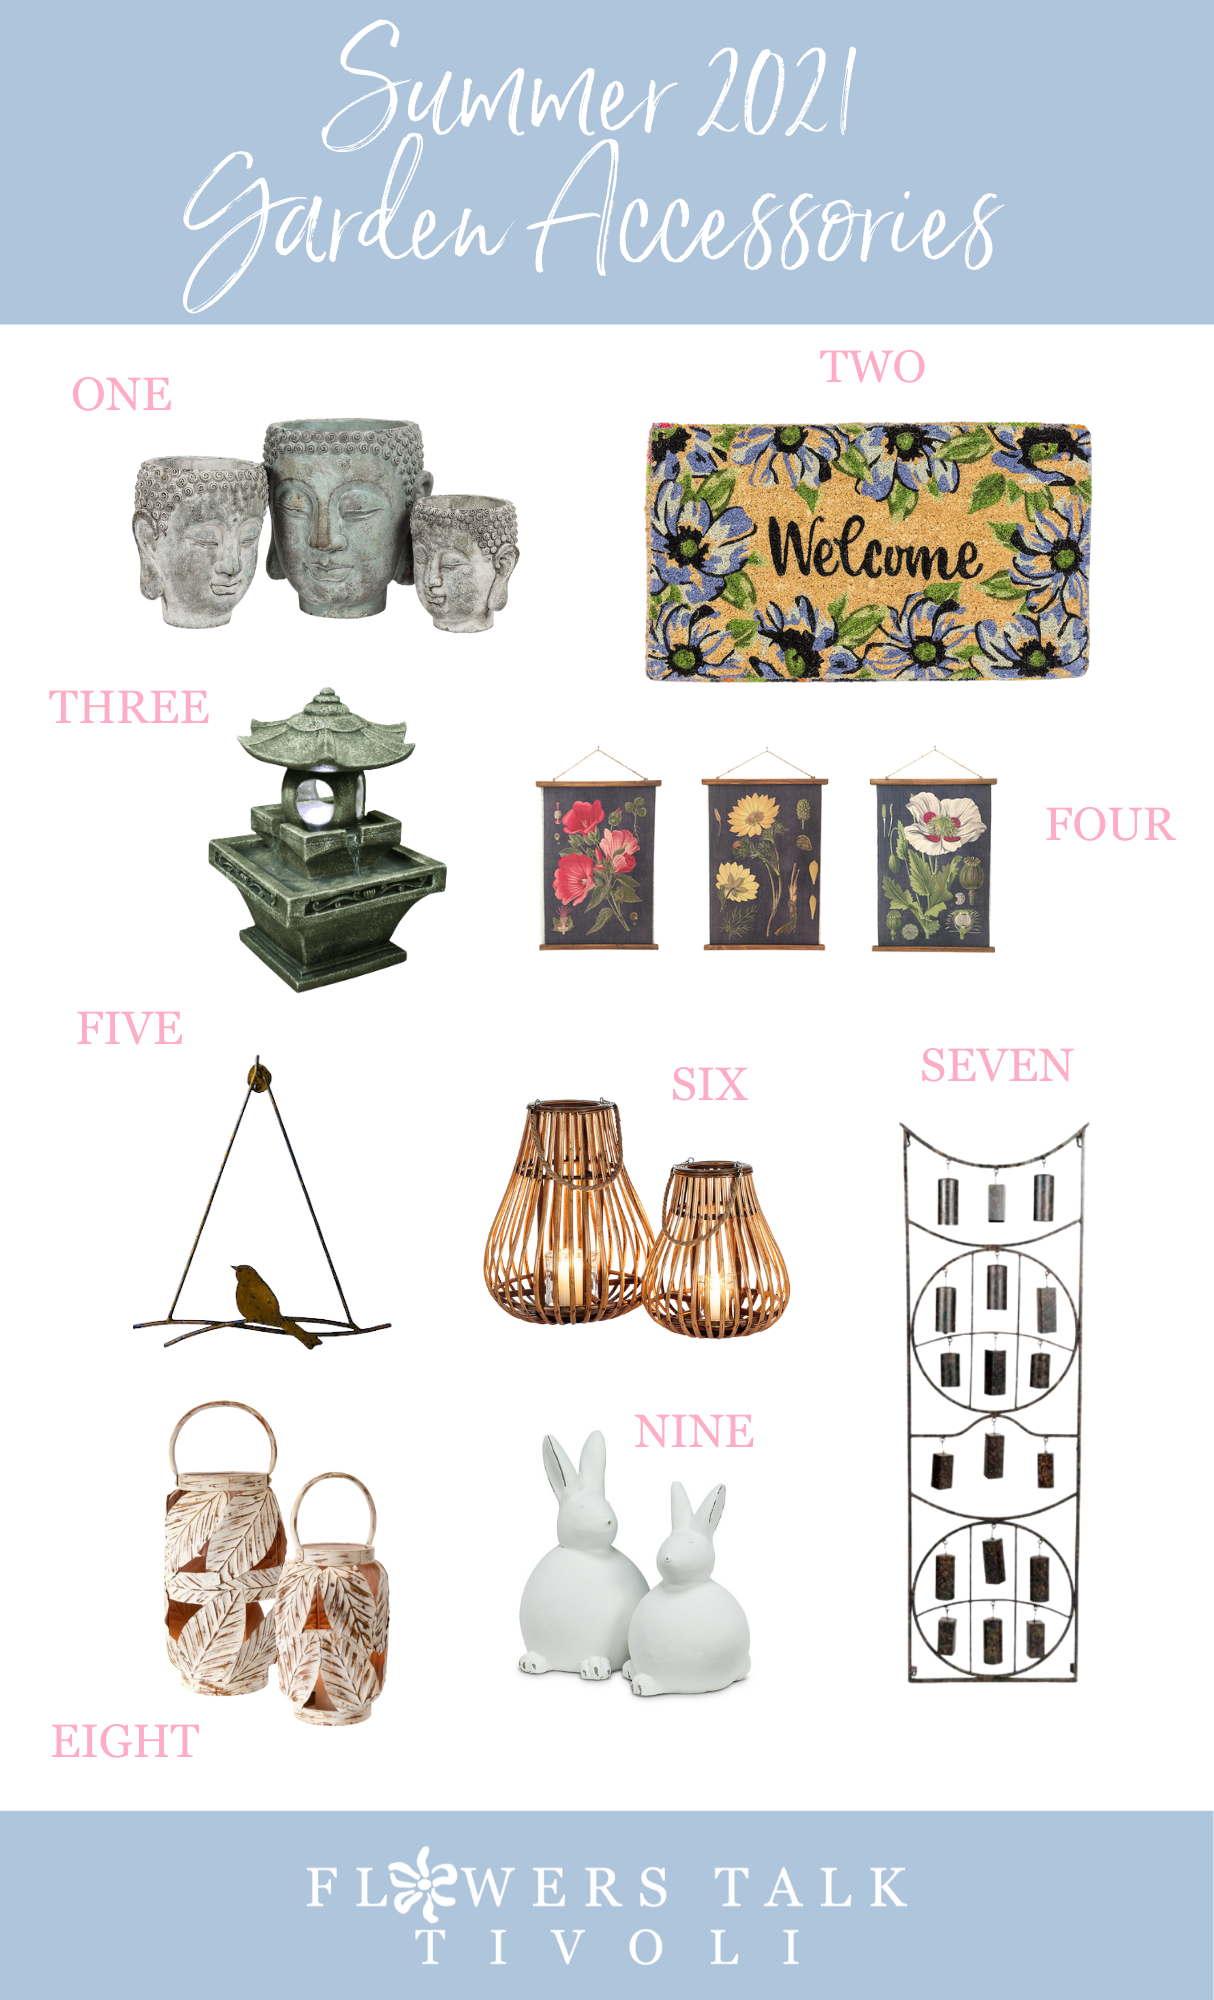 Our Top Garden Accessories for Summer 2021